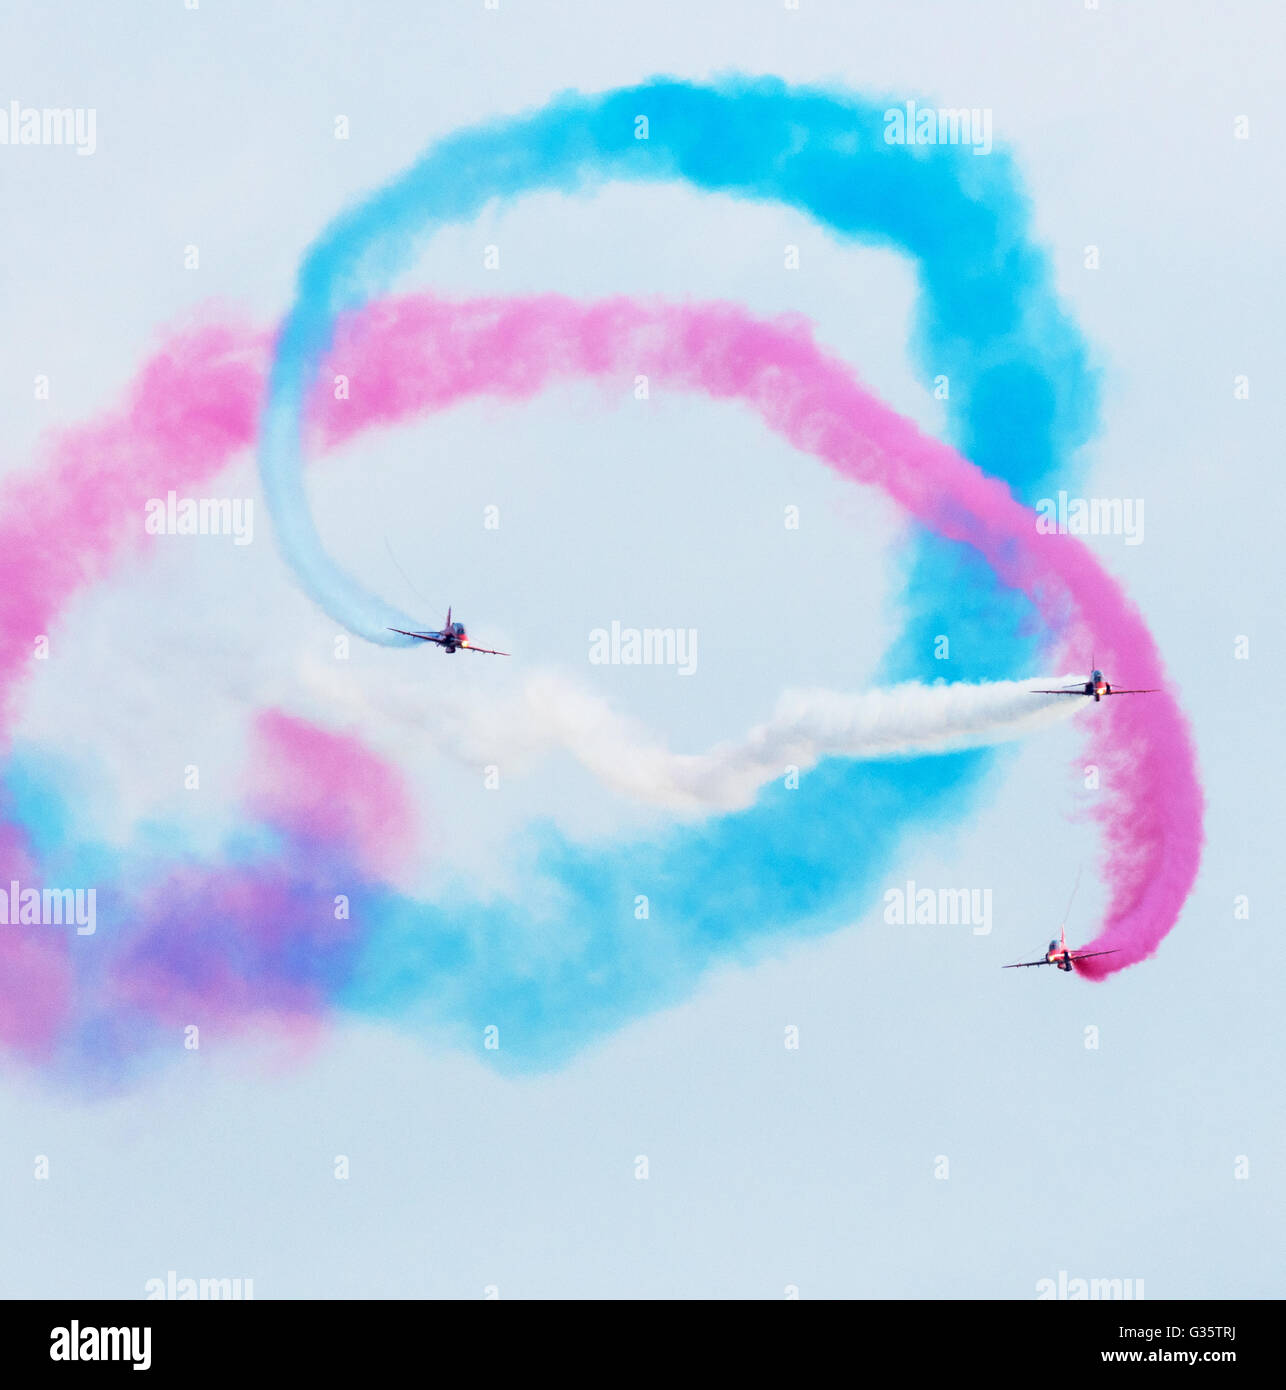 Three of the Red Arrows flying towards the camera in formation, with colourful smoke, Duxford Airshow, UK - Stock Image